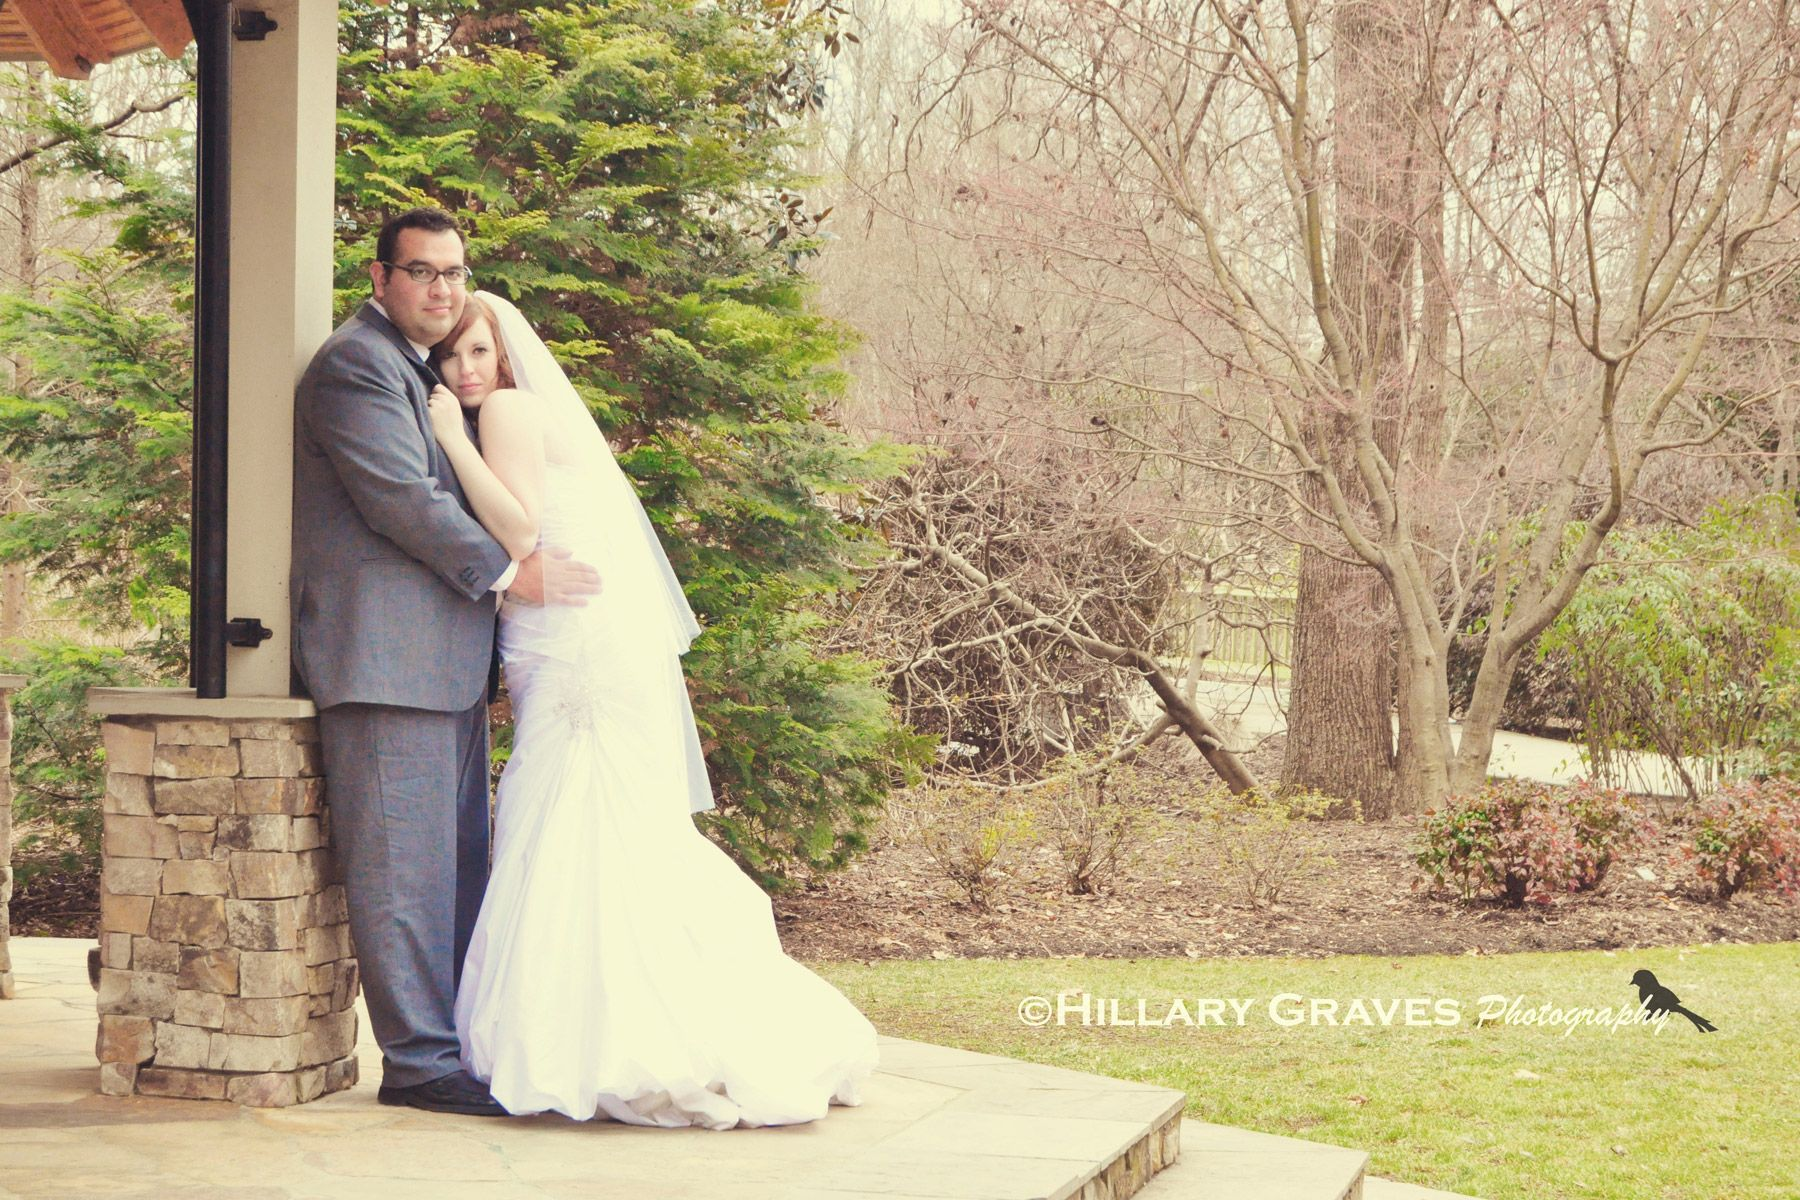 Hillary Graves Photography | Wedding, Engagement, Fine Art Photography